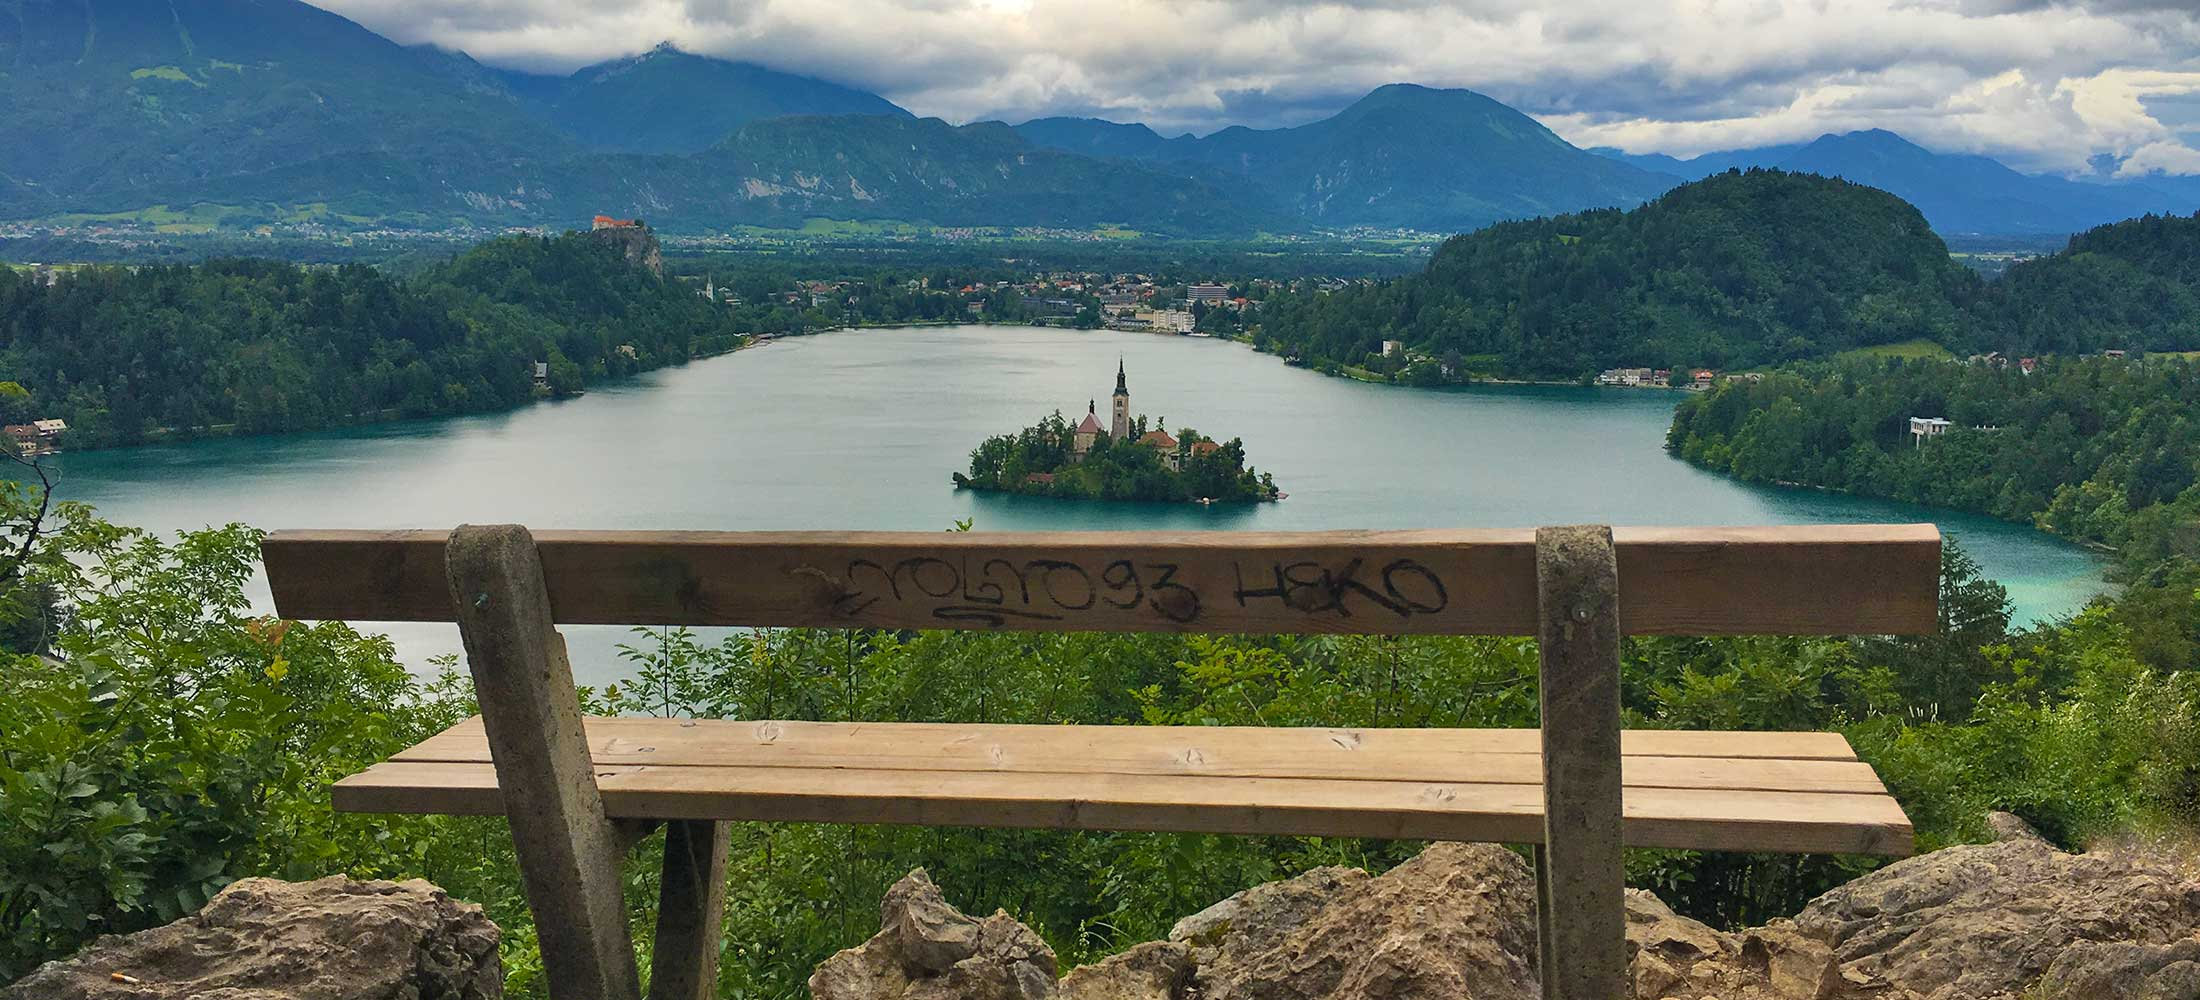 The famous bench on lake Bled